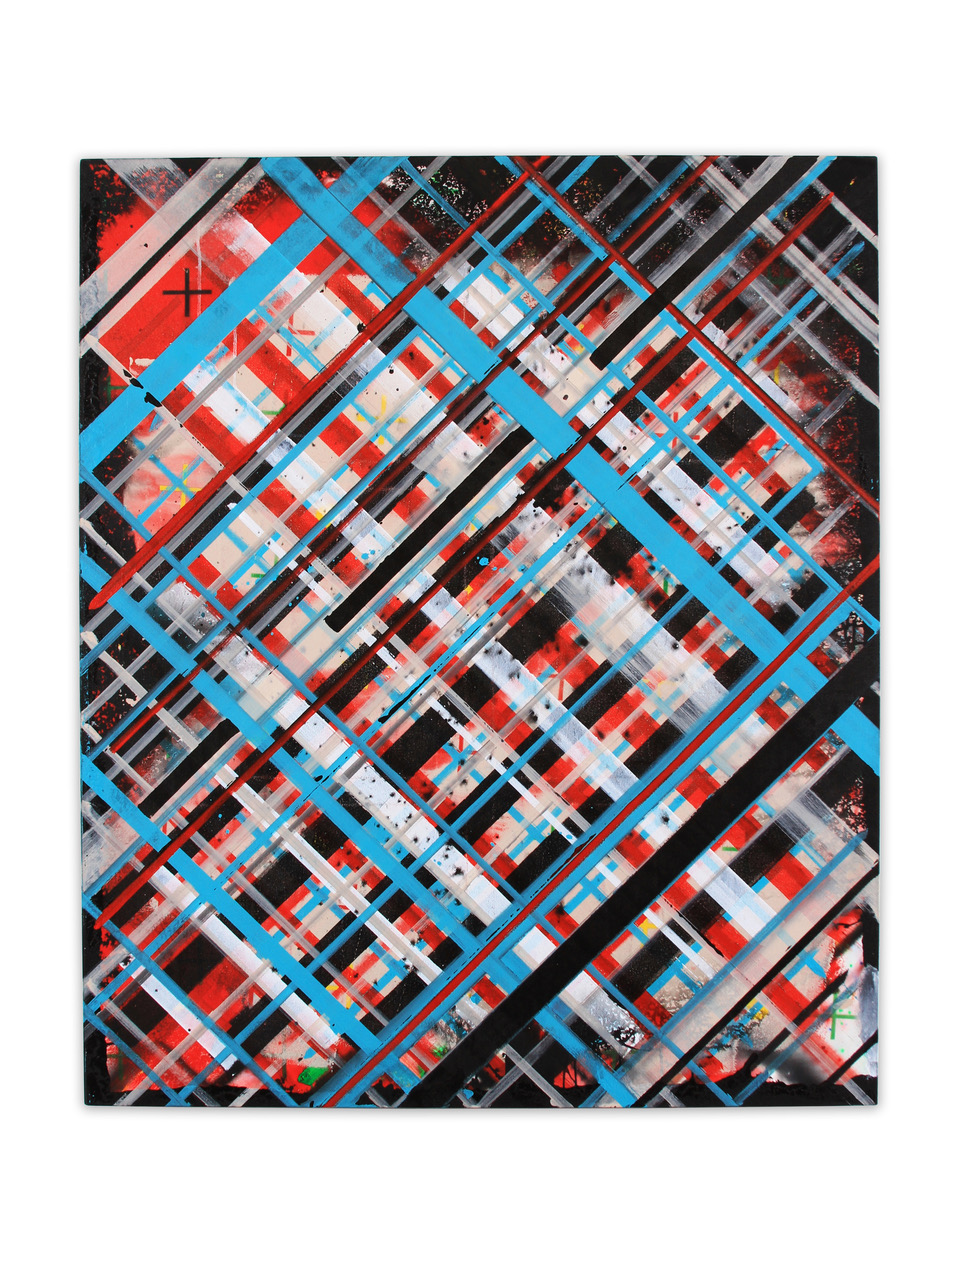 "Ed Moses, Cuba #2, 2014-15, acrylic on canvas, 52"" x 43"""